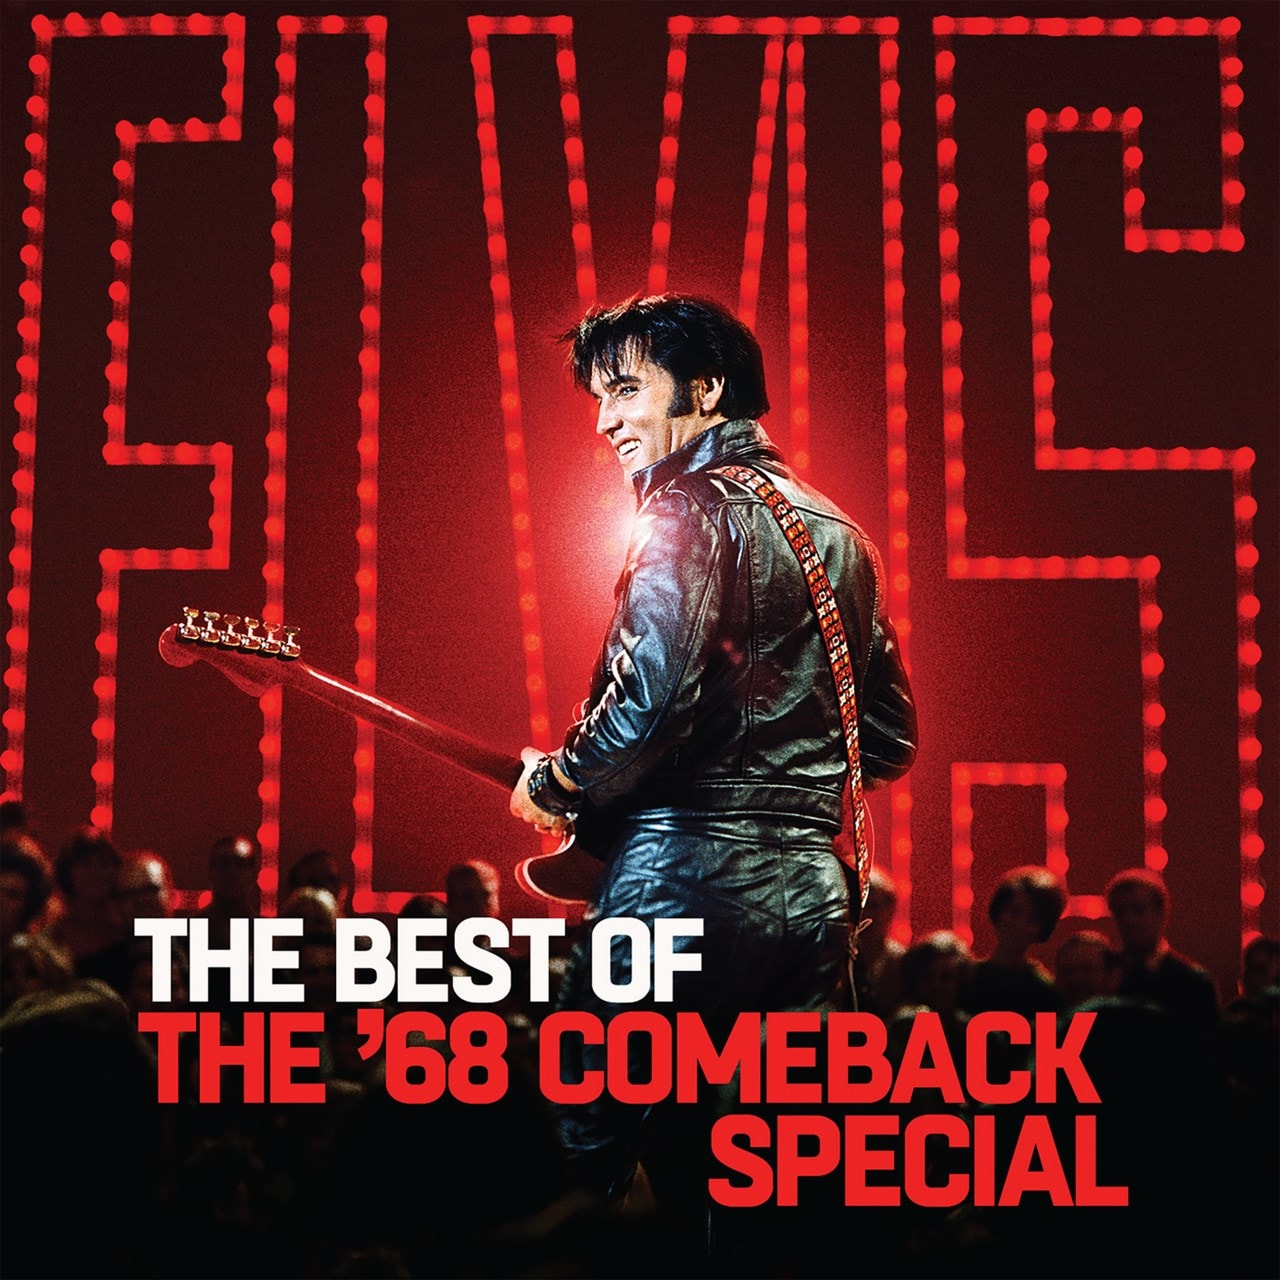 The Best of the '68 Comeback Special - 1